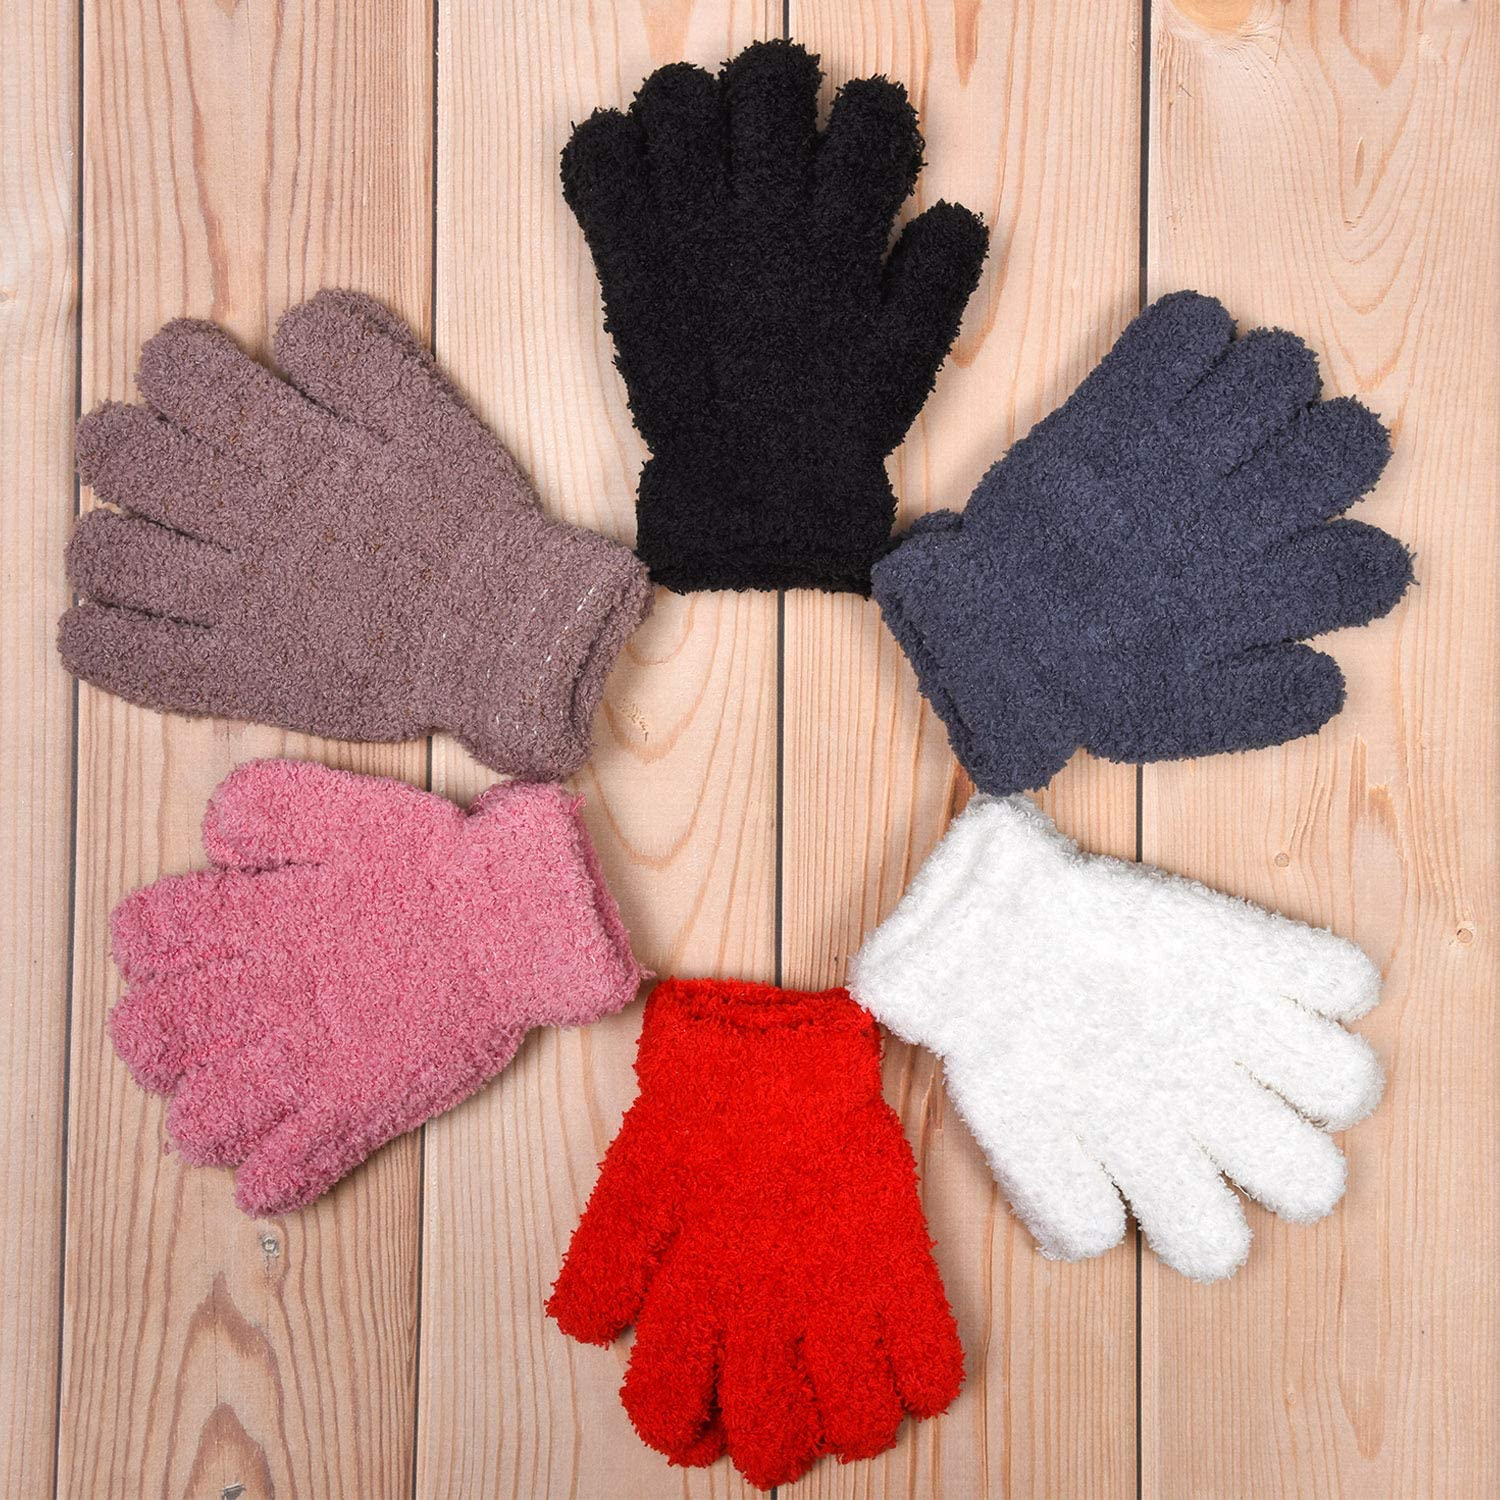 12 Pairs Kids Gloves Stretch Full Finger Mittens Winter Warm Knitted Unisex Kid Gloves for Boys and Girls Supplies